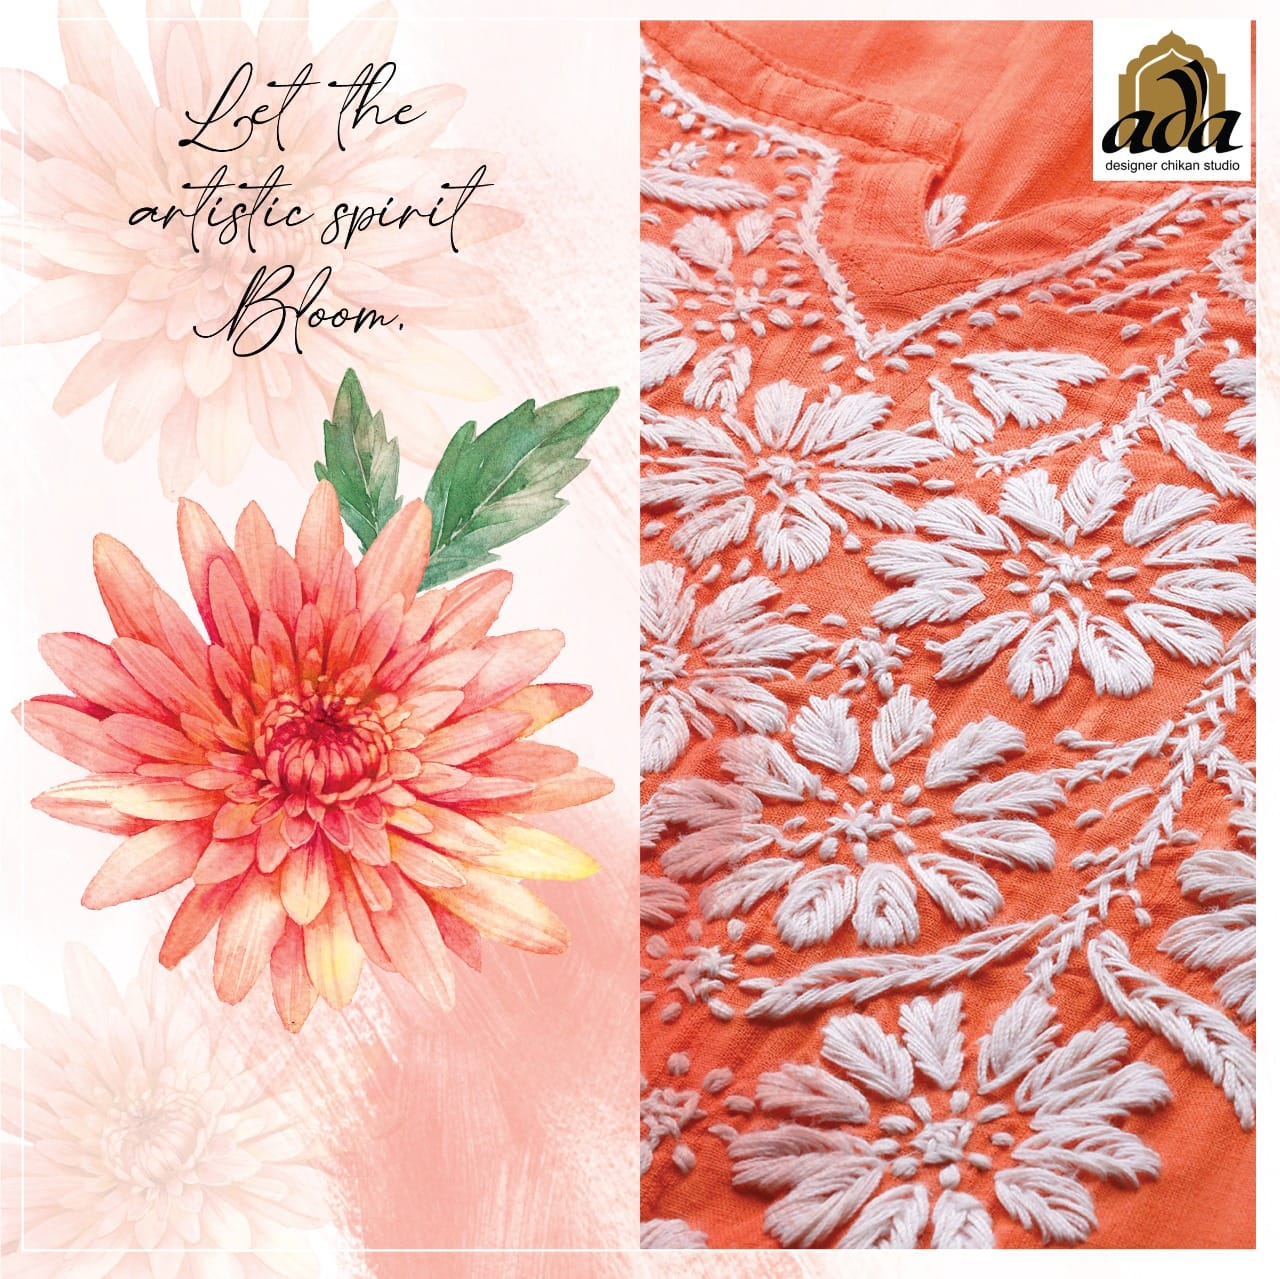 This image depicts Ada Chikan Website Kurti with Floral Motifs in Blog about Nature Inspiration by Artisan to Create Designer Clothing